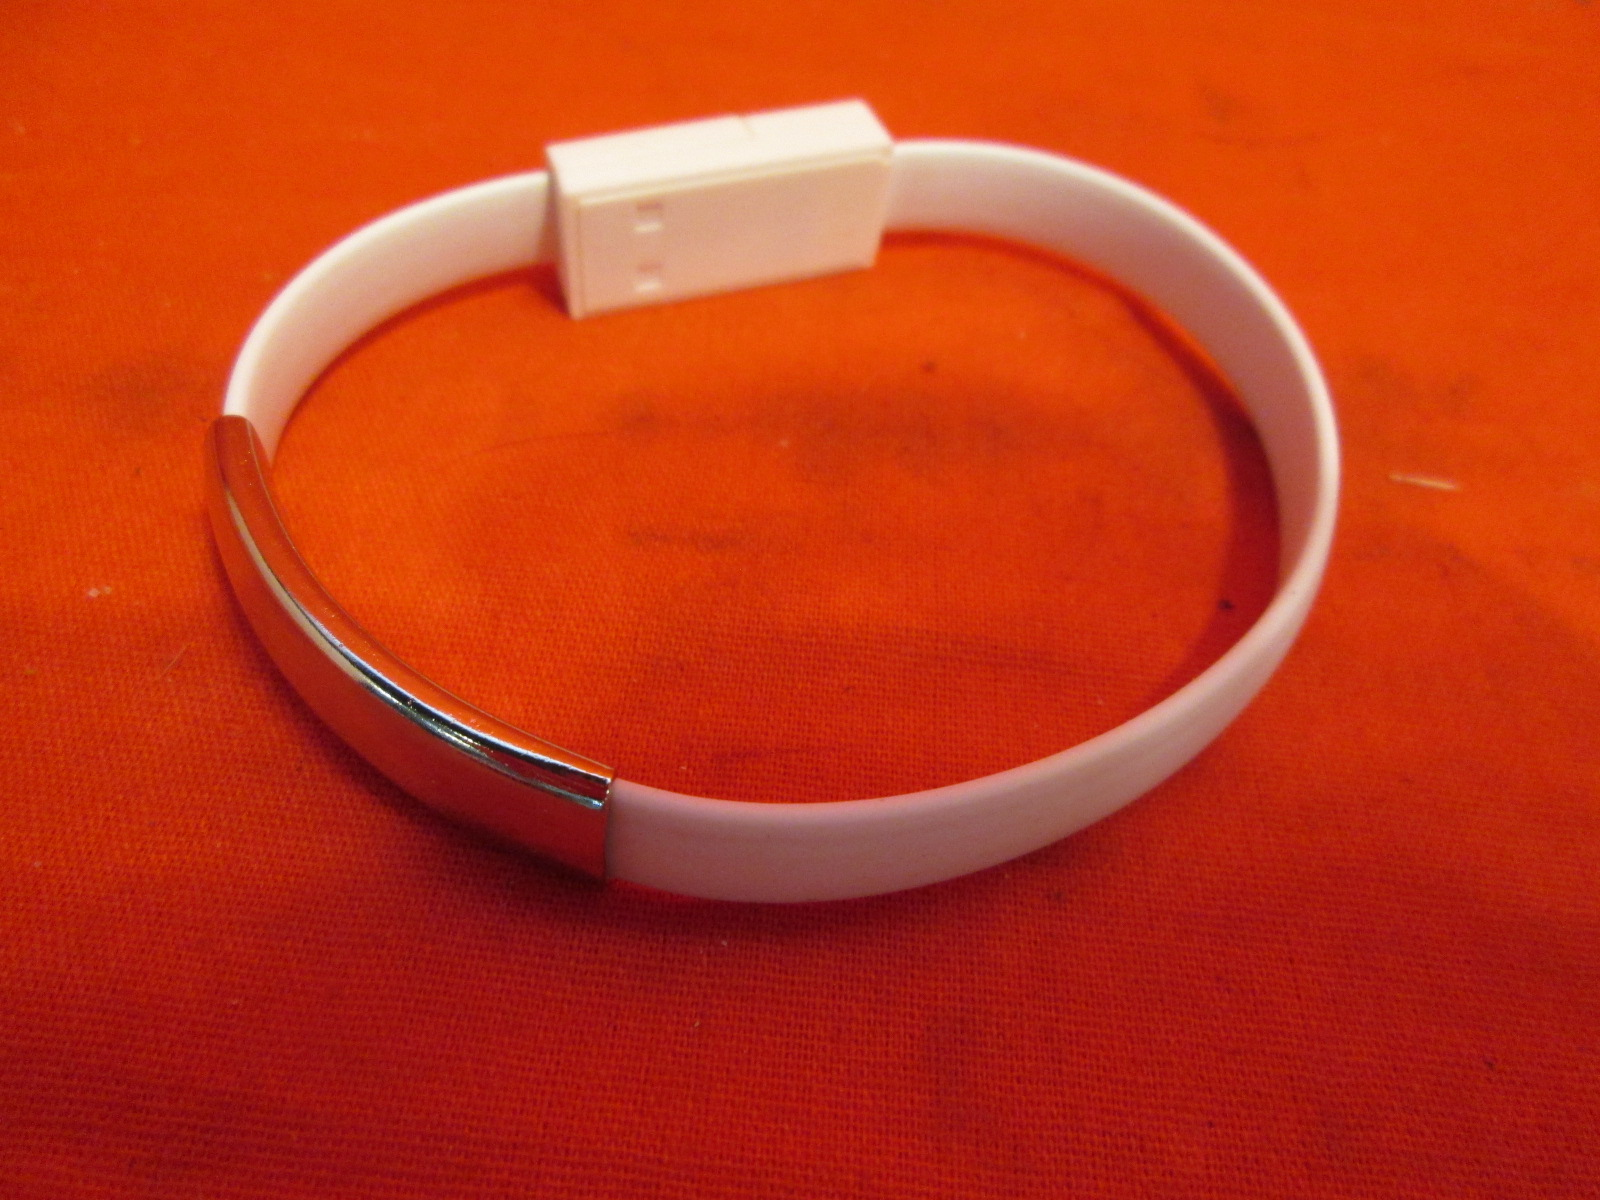 Lightning Cable Bracelet For iPhones White By Mars Devices